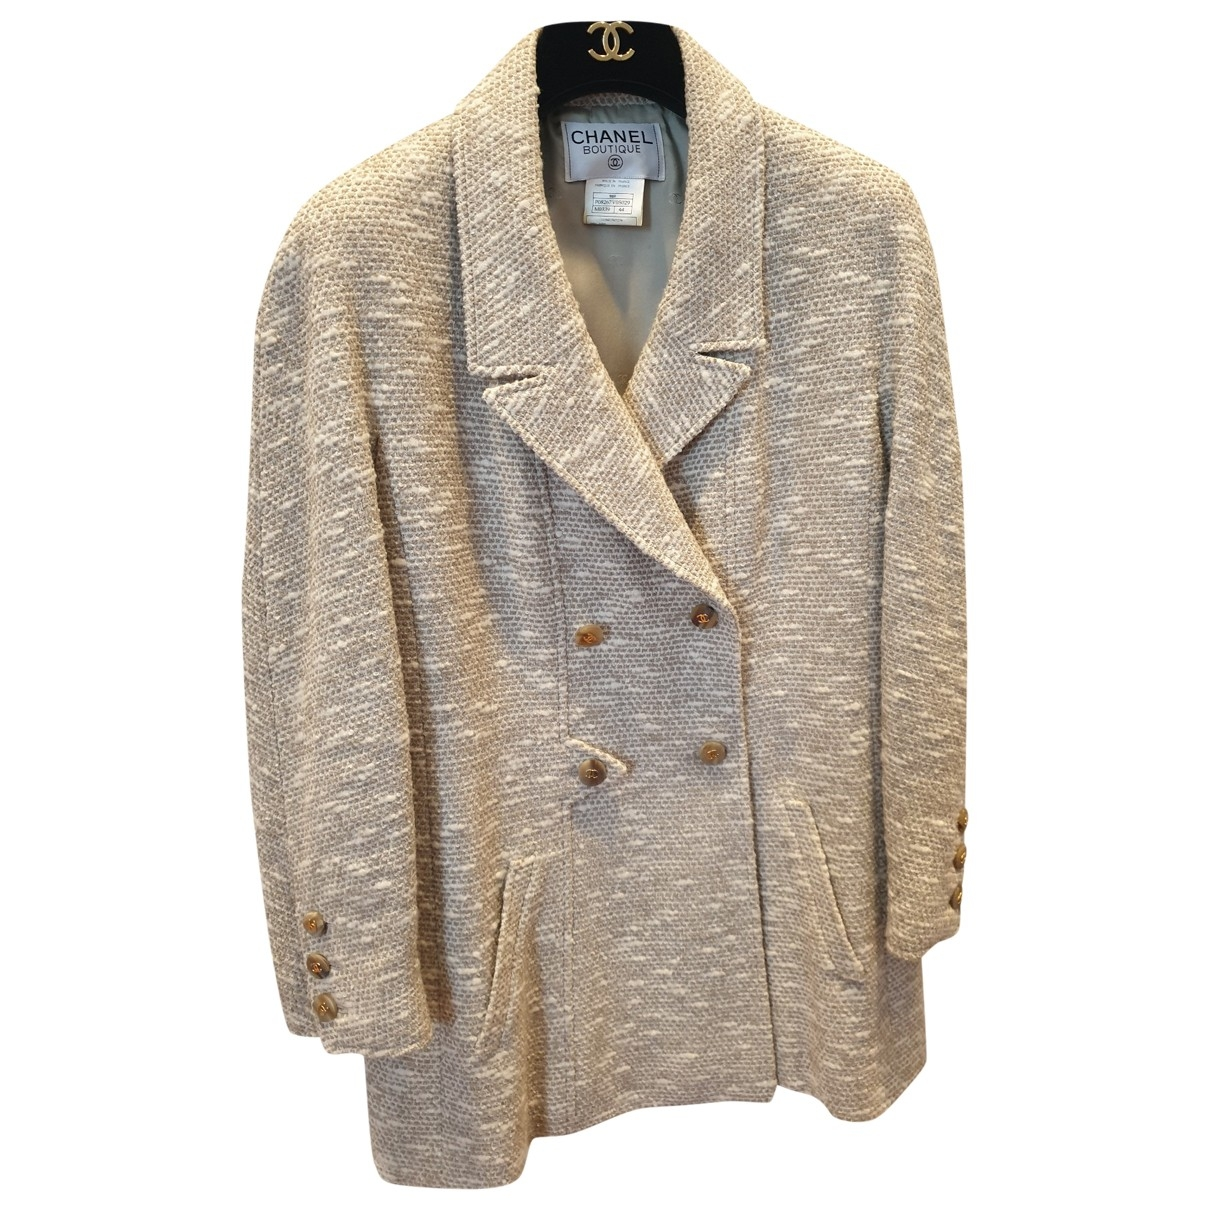 Chanel \N Ecru Wool jacket for Women 44 FR